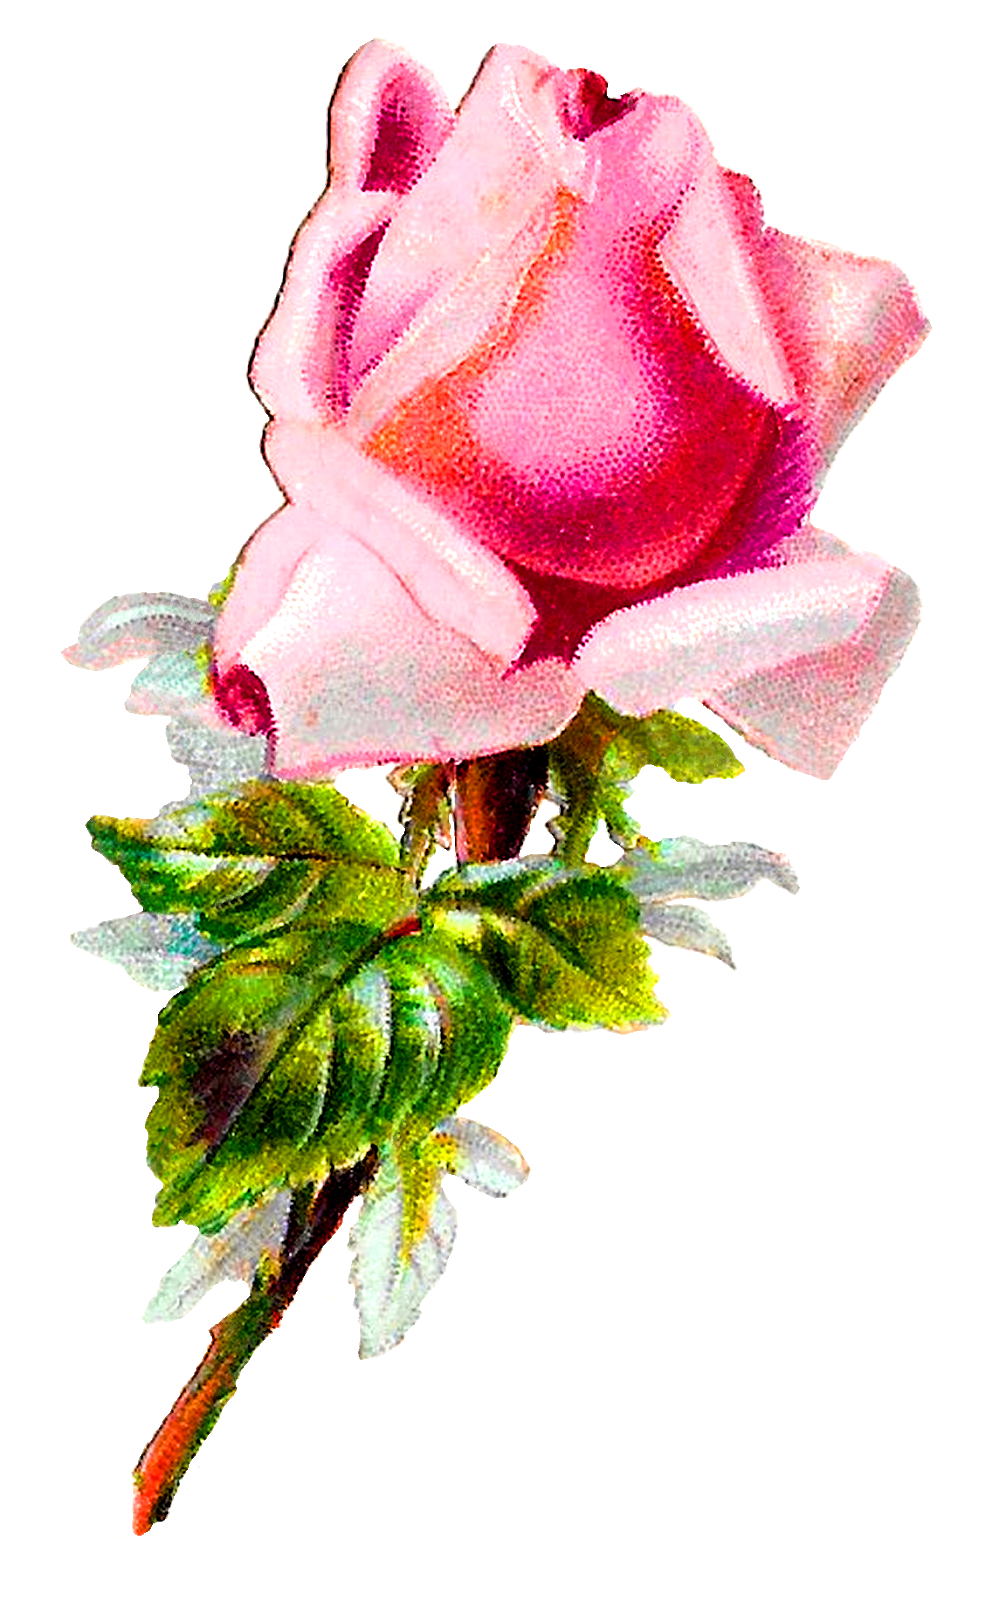 Roses clipart shabby chic. Antique images pink flower